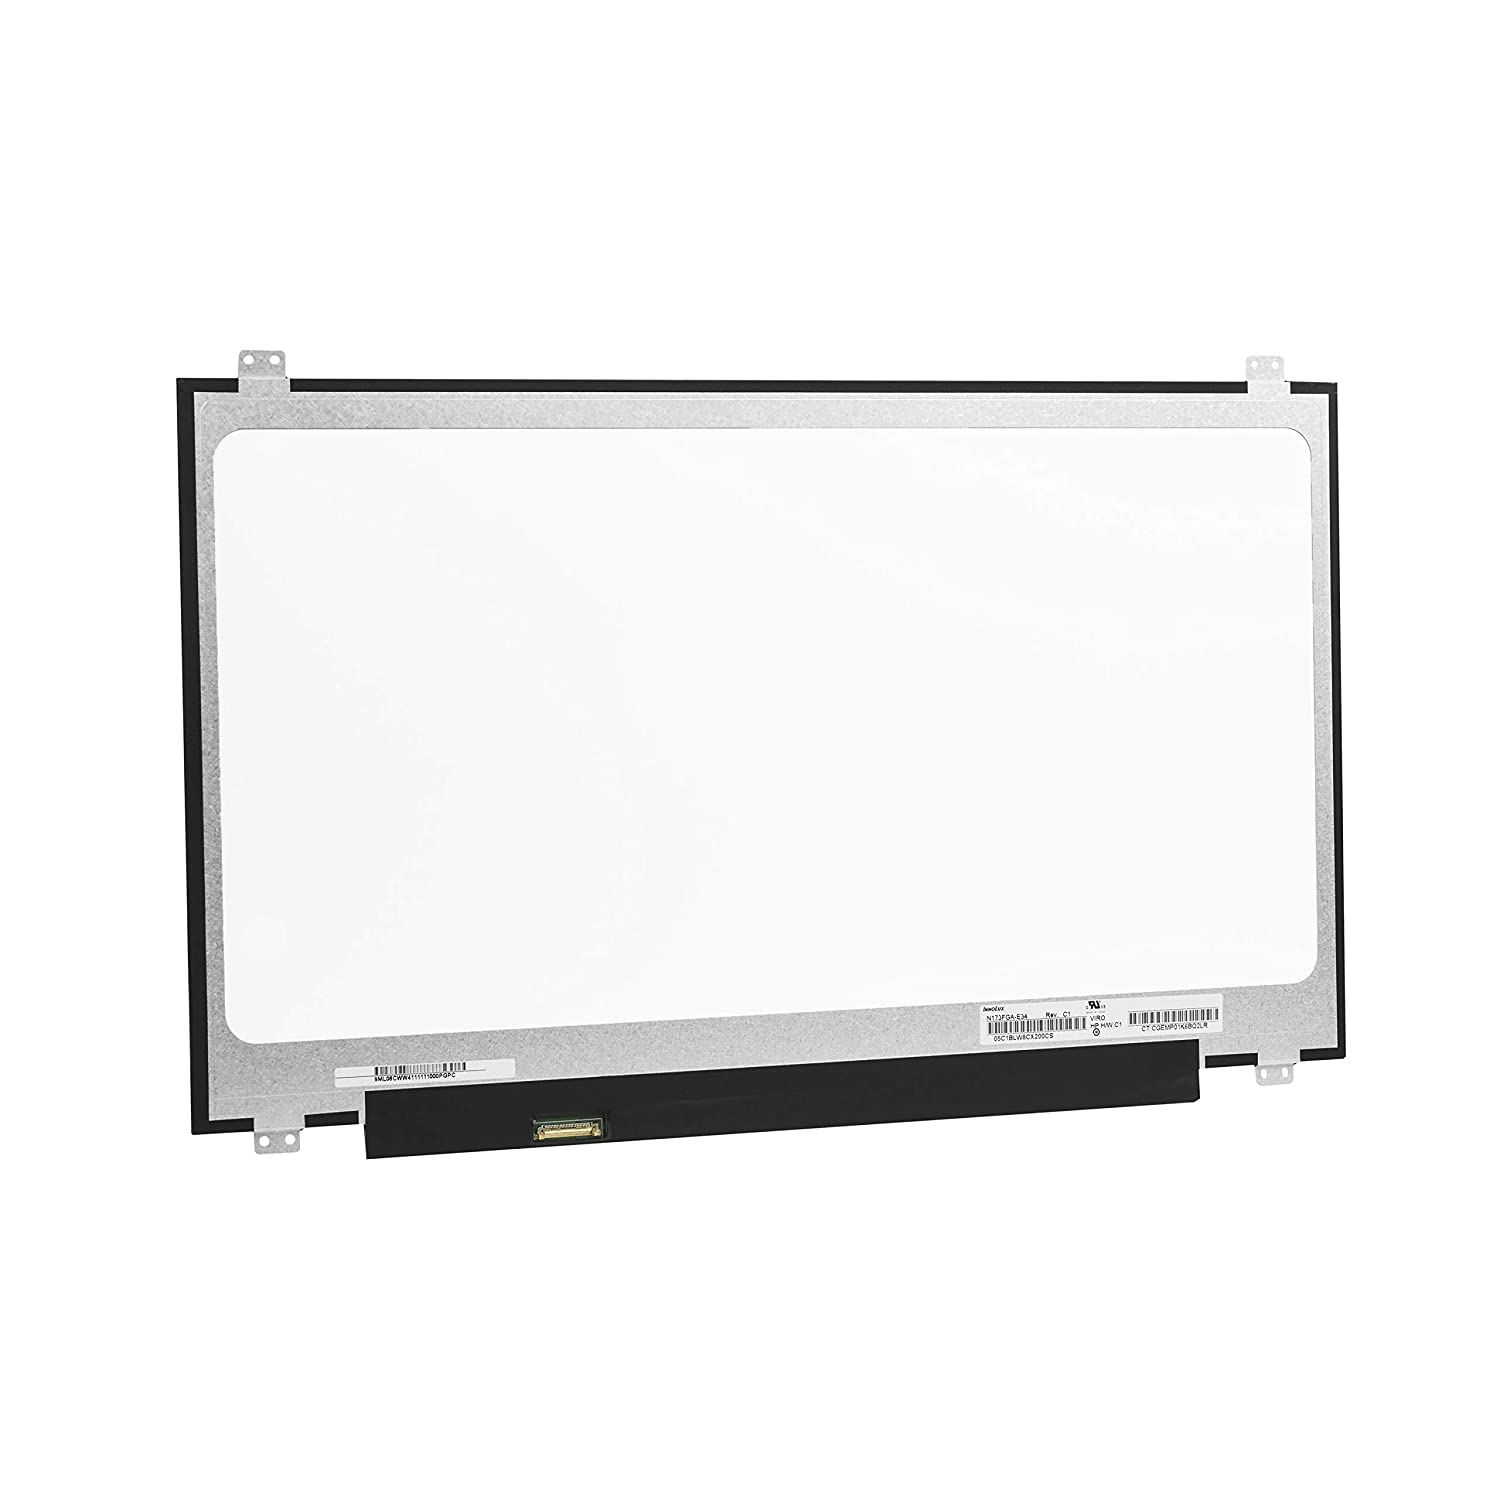 Screen Replacement for Laptop Acer TravelMate P259 P259-G2-M P259-G2-MG P259-M 15.6 LED Backlit Display HD 1366x768 Screen Slim 30 pin eDP Matte